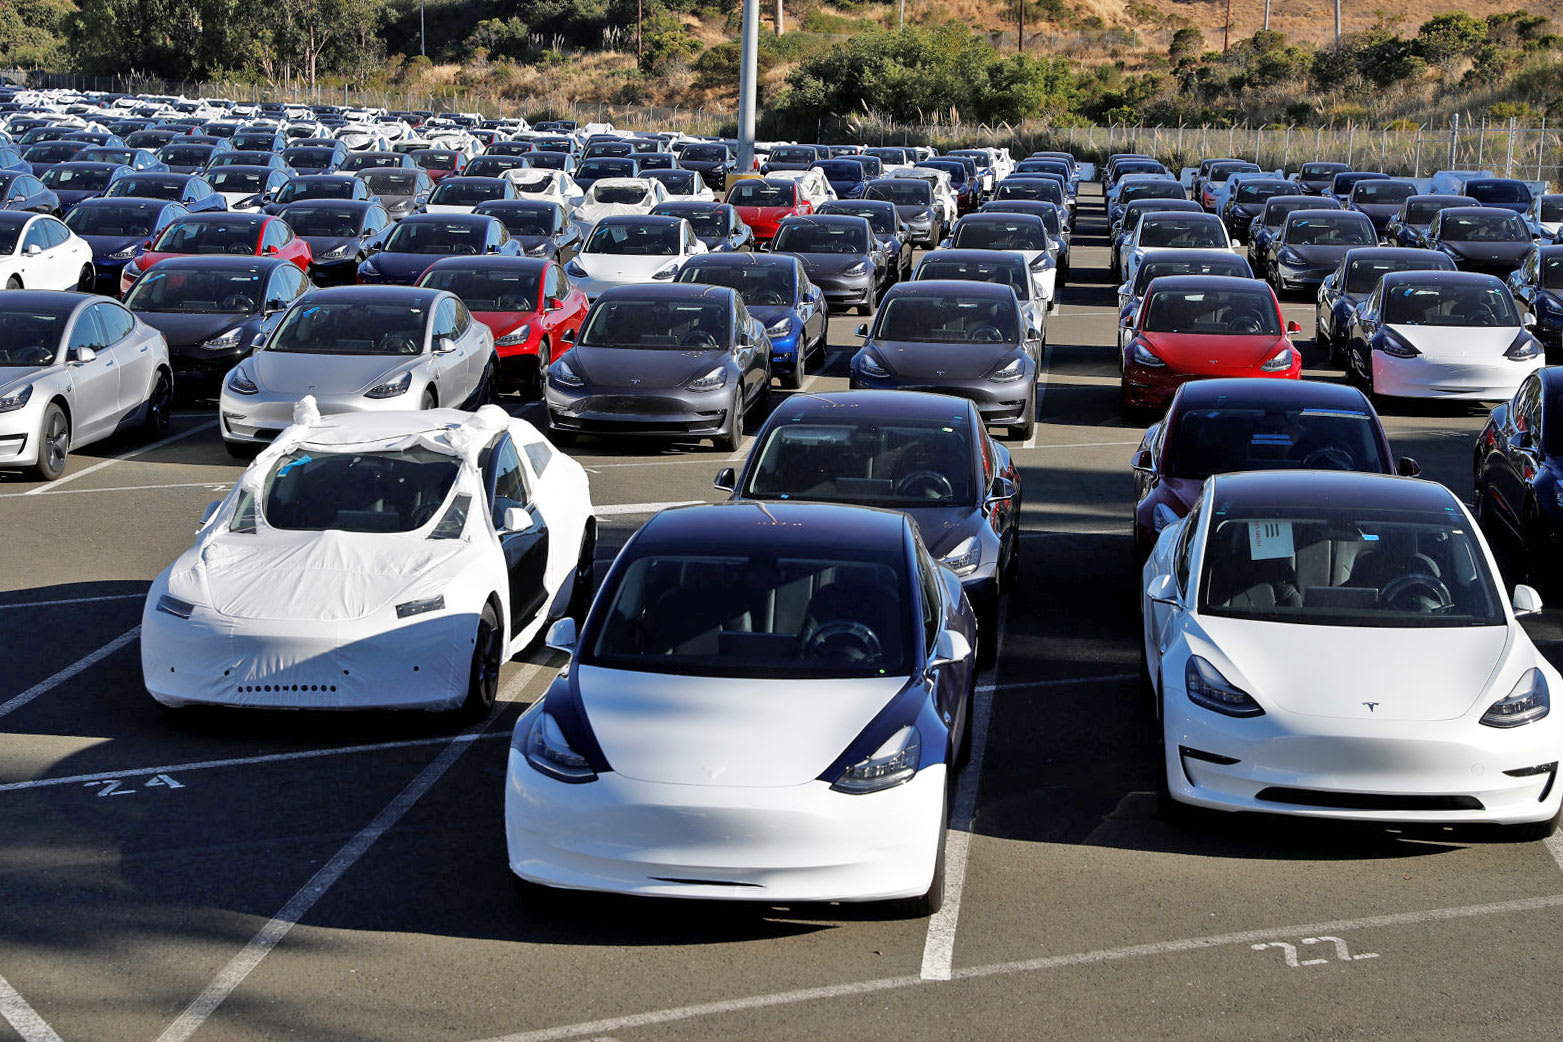 Tesla drops color options to speed up production